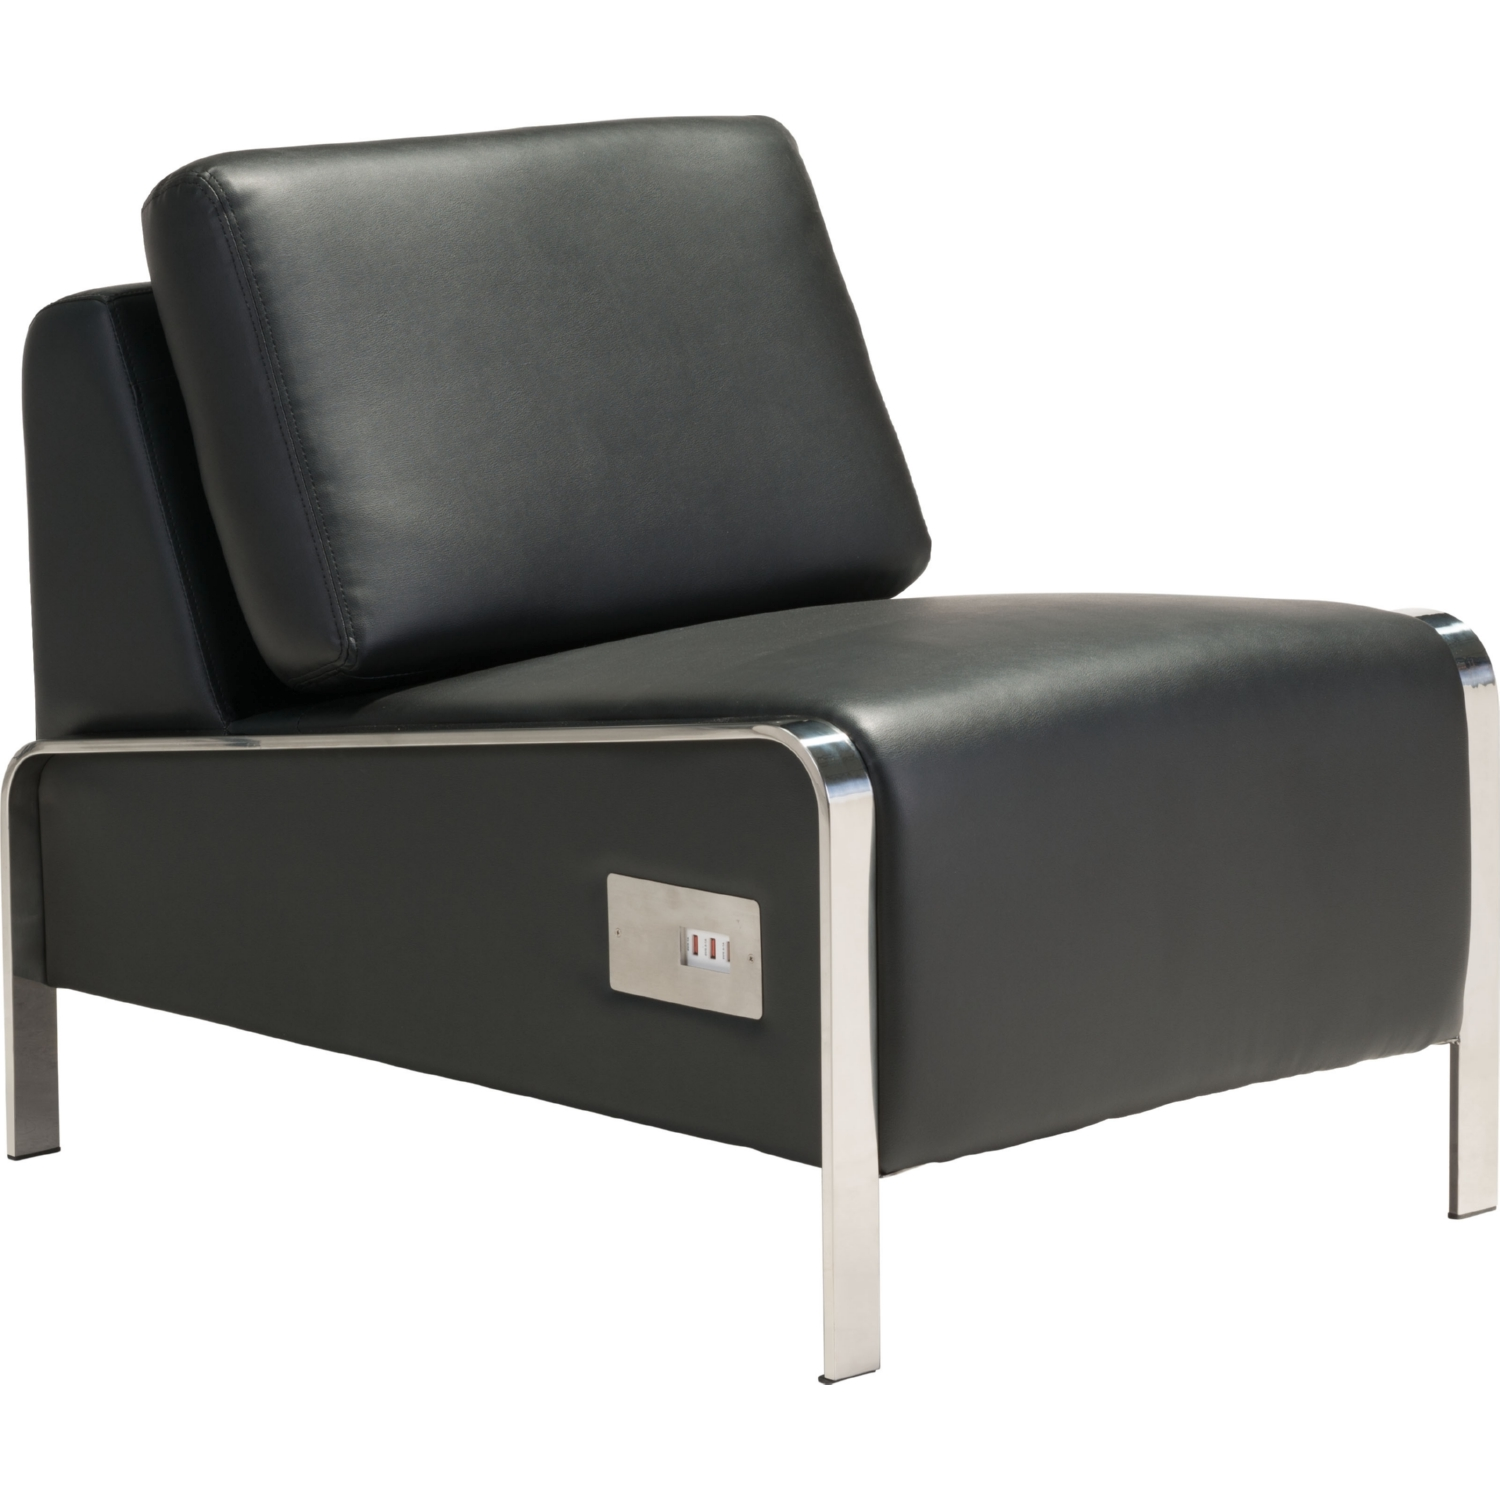 Zuo Modern Thor Armless Chair in Black Leatherette & Chrome